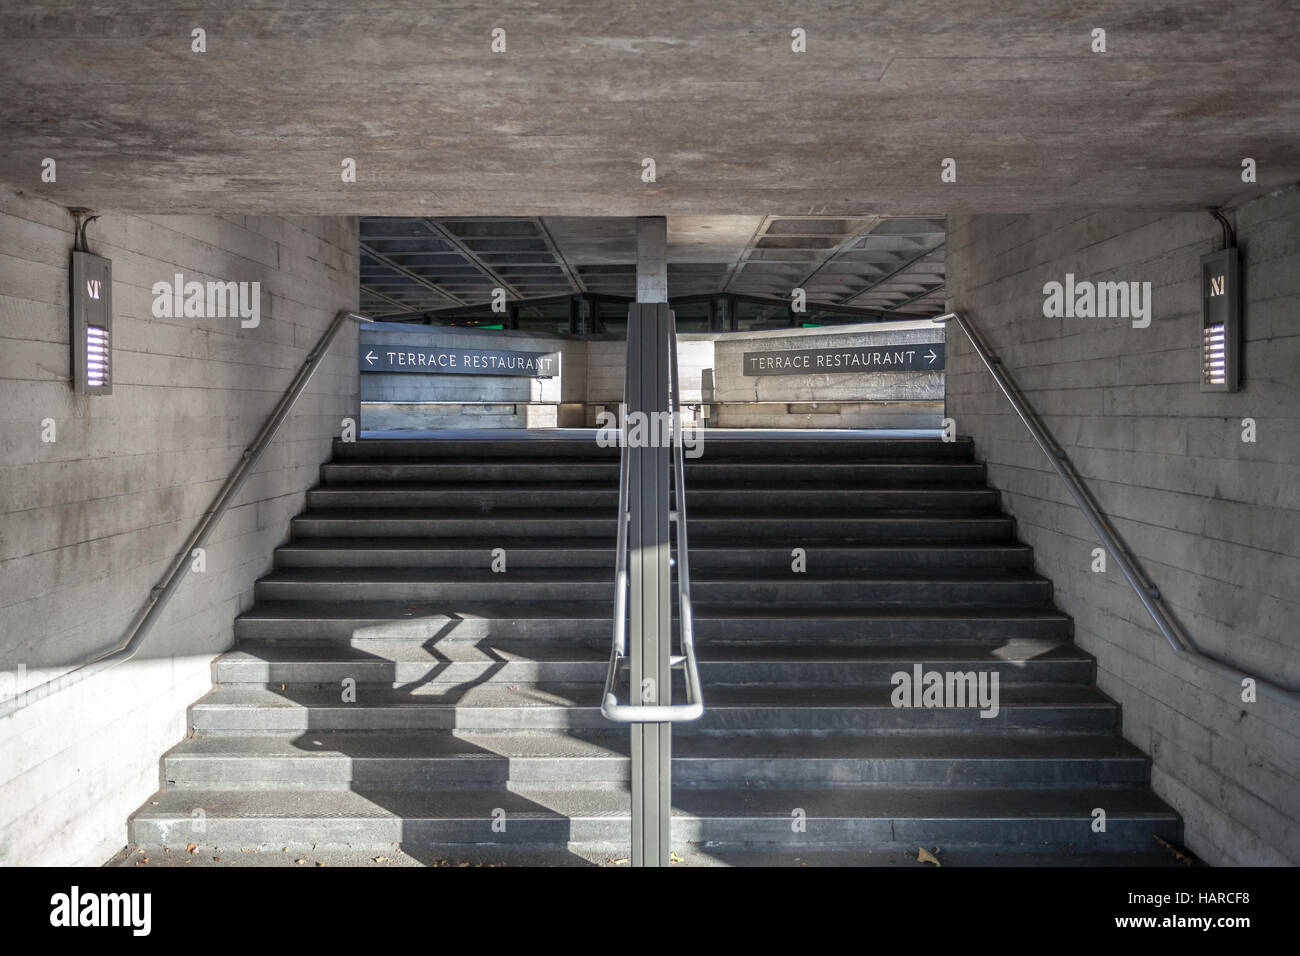 London, stairs with terrace restaurant directions indicators - Stock Image